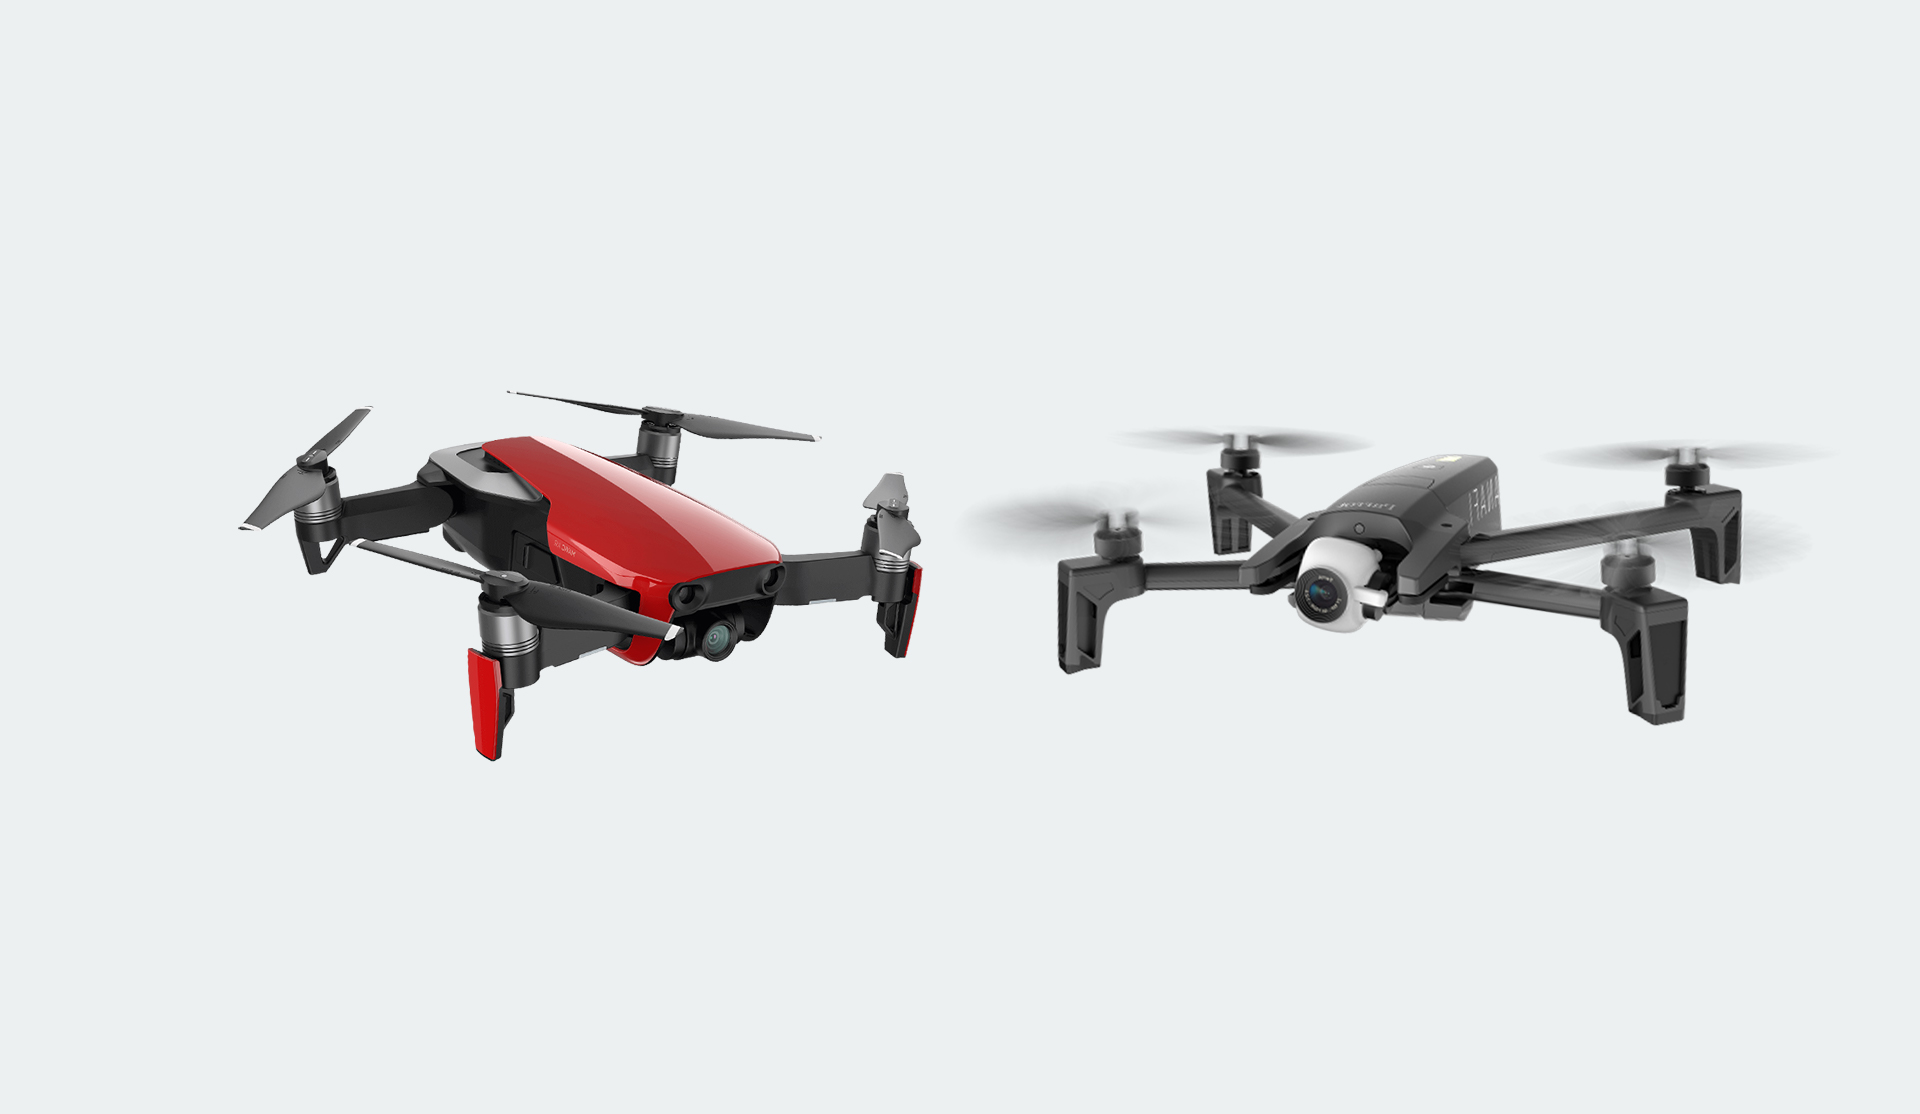 DJI Mavic Air vs Parrot Anafi: Does Parrot have a chance